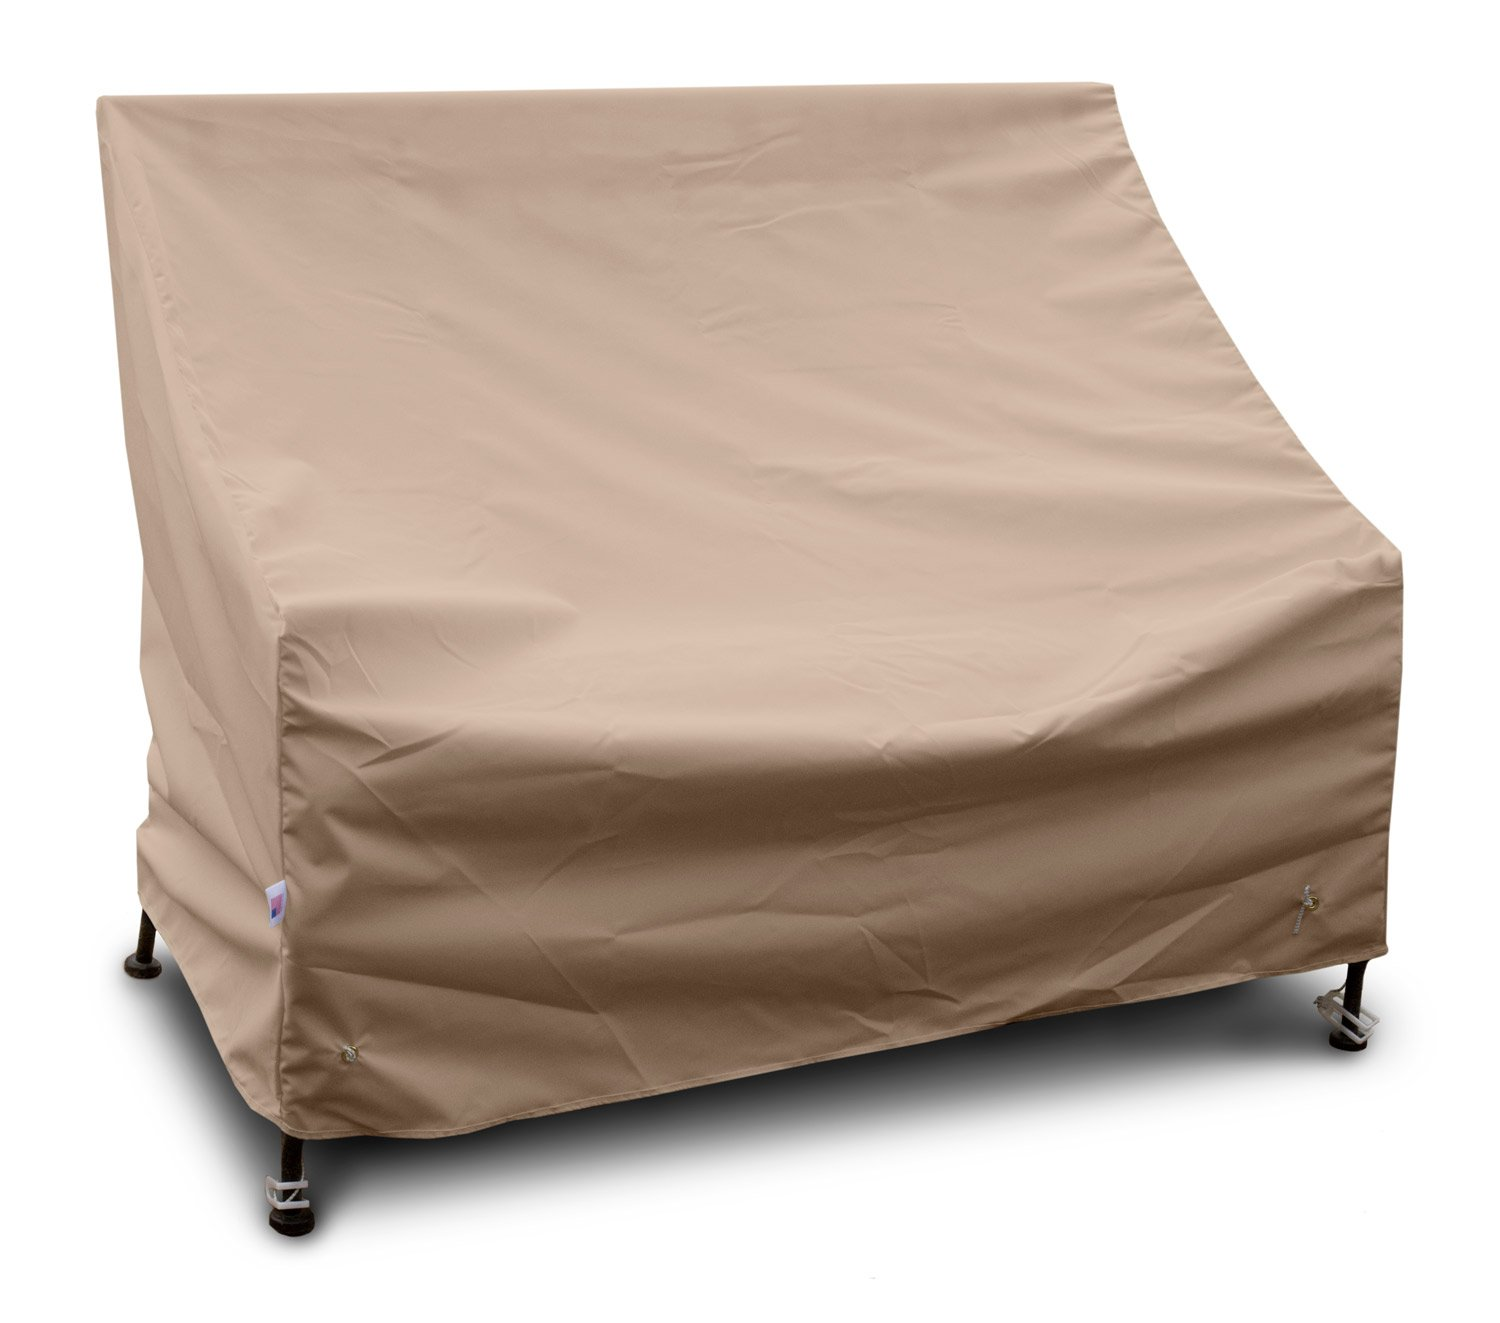 KoverRoos Weathermax 42450 3-Seat Glider/Lounge Cover, 78-Inch Width by 38-Inch Diameter by 30-Inch Height, Toast